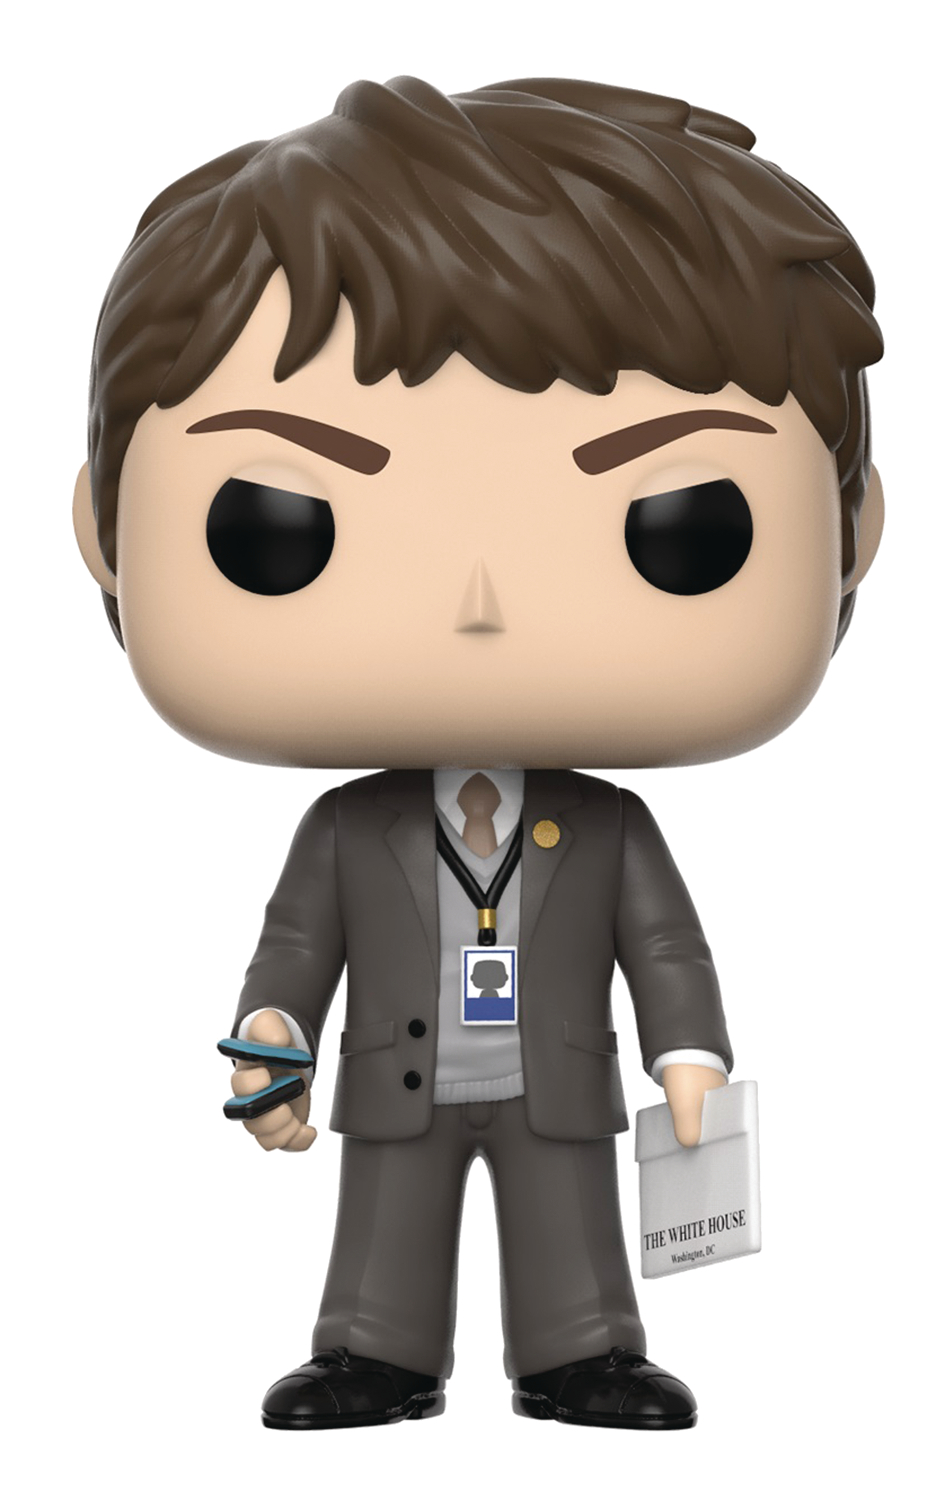 POP TV VEEP JONAH RYAN VINYL FIG